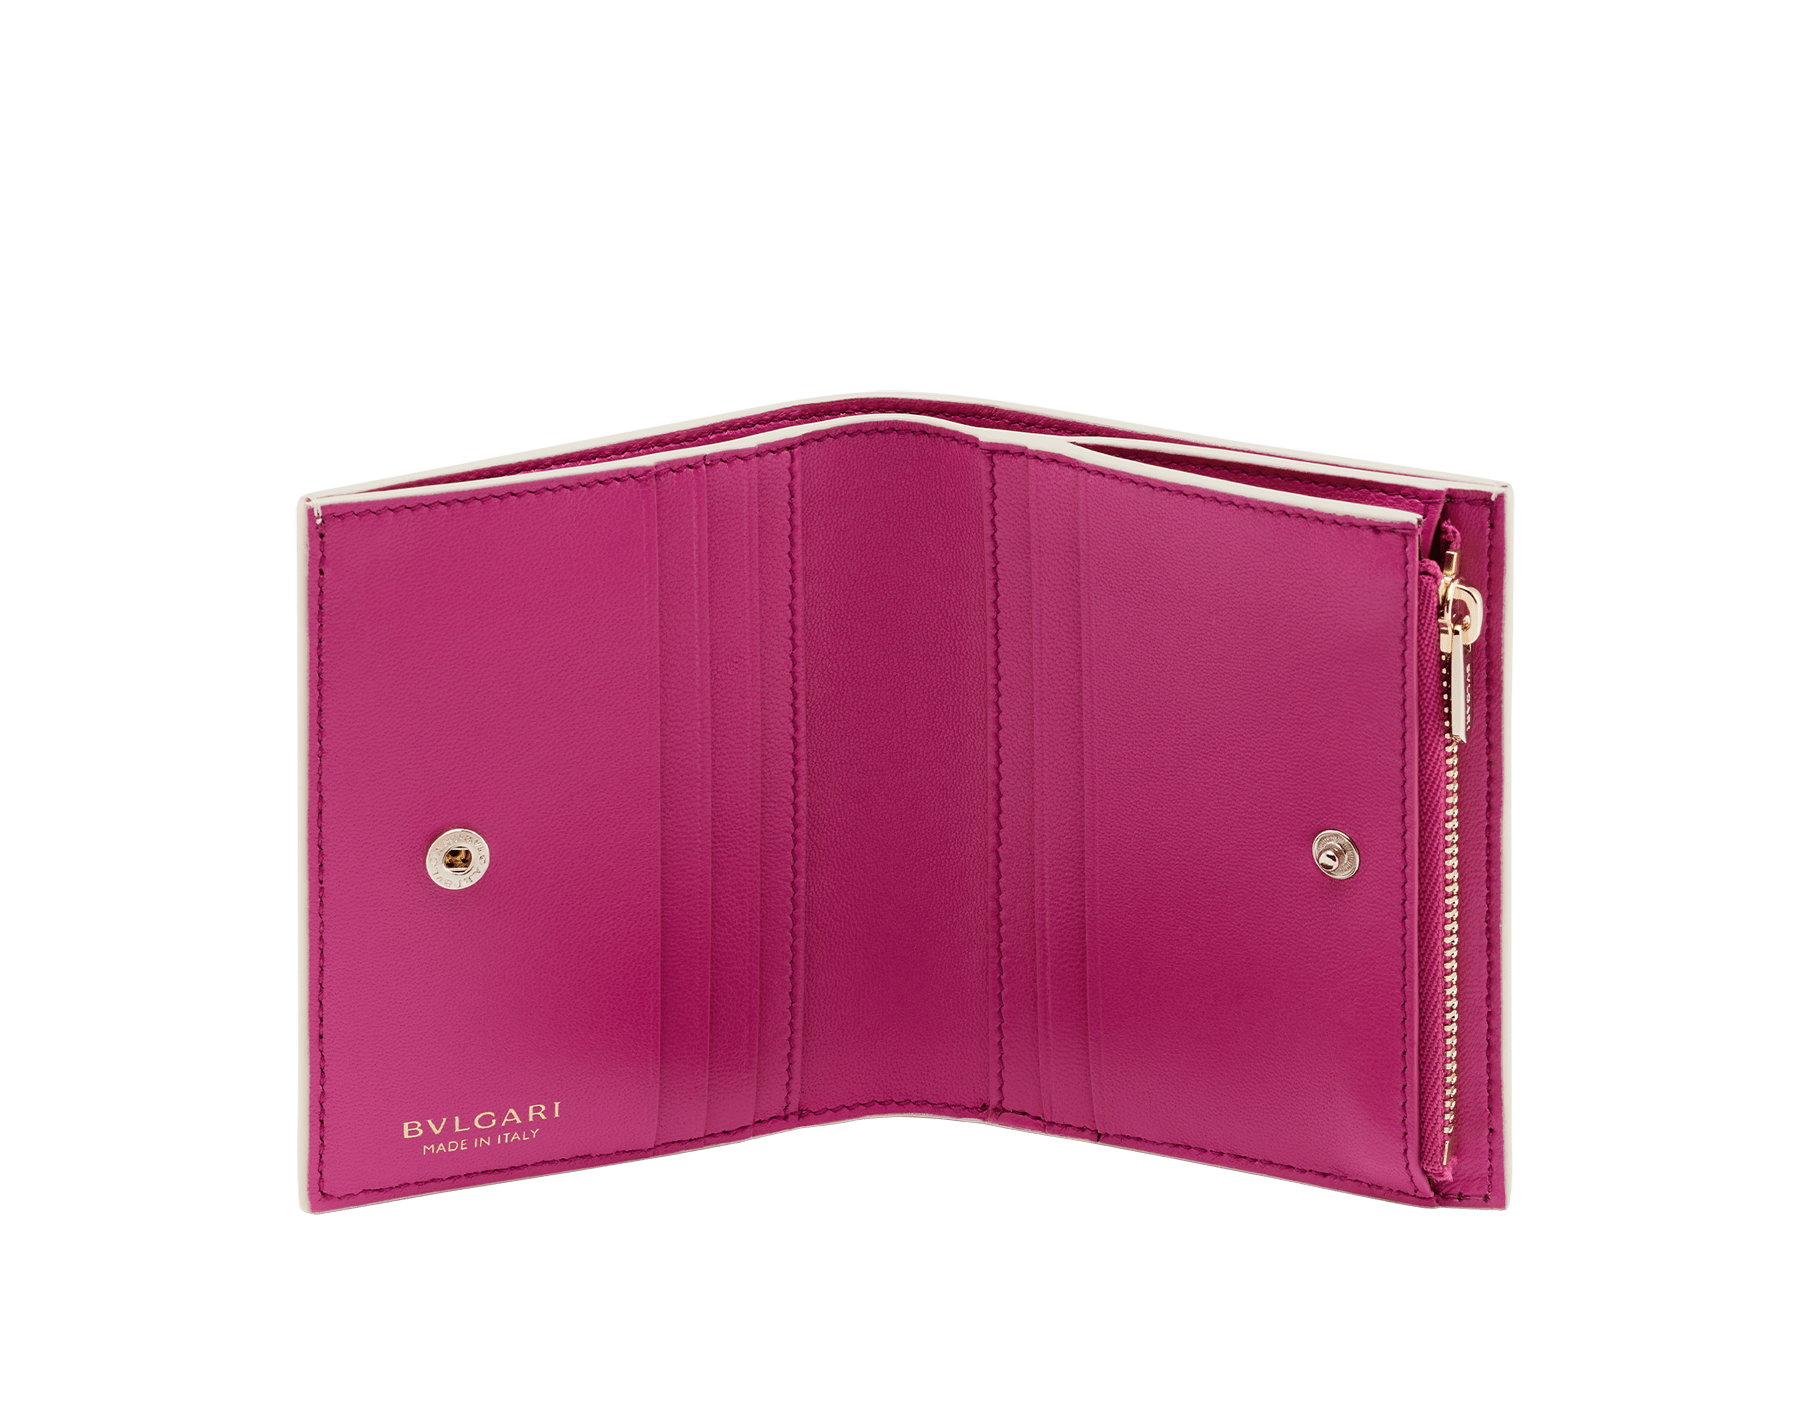 Bvlgari Logo compact wallet in Ivory Opal white calf leather with hot stamped Infinitum Bvlgari logo pattern and plain Pink Spinel nappa leather lining. Light gold-plated brass hardware BVL-COMPACTWLT image 2